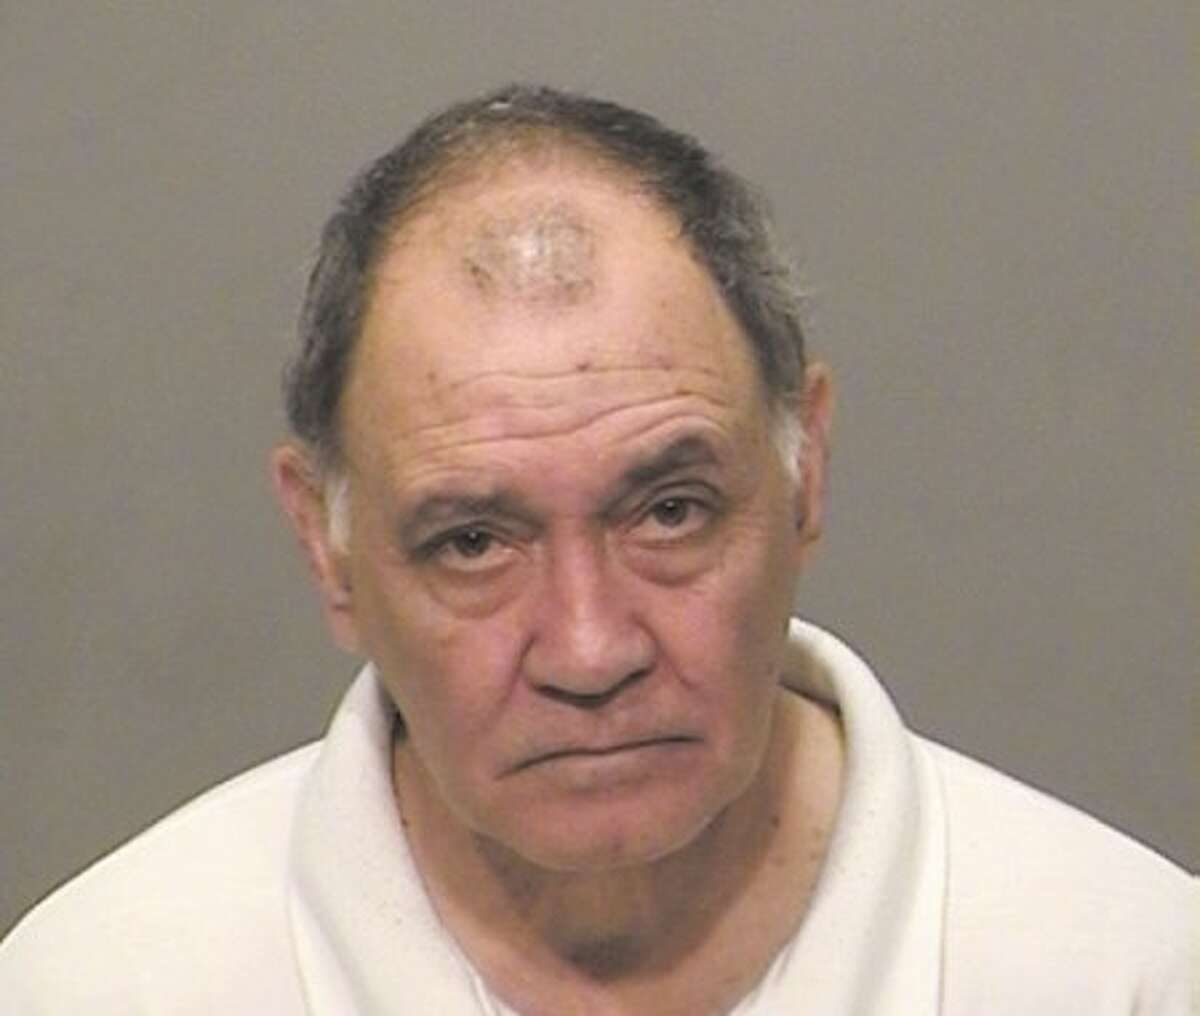 Stamford man who allegedly threatened president appears in court